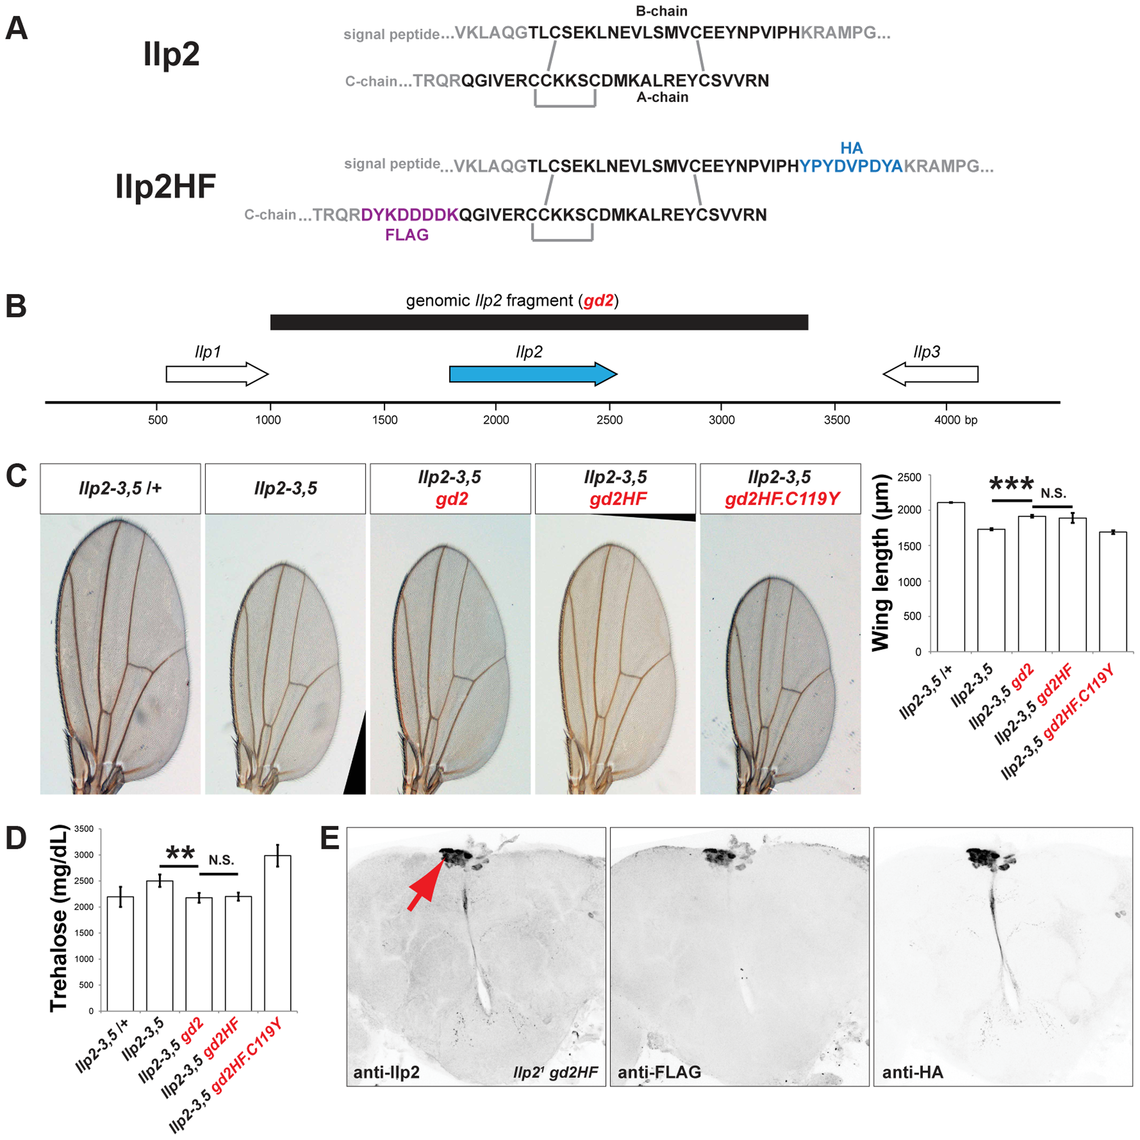 Epitope-tagged Ilp2 rescues insulin deficiency phenotypes.